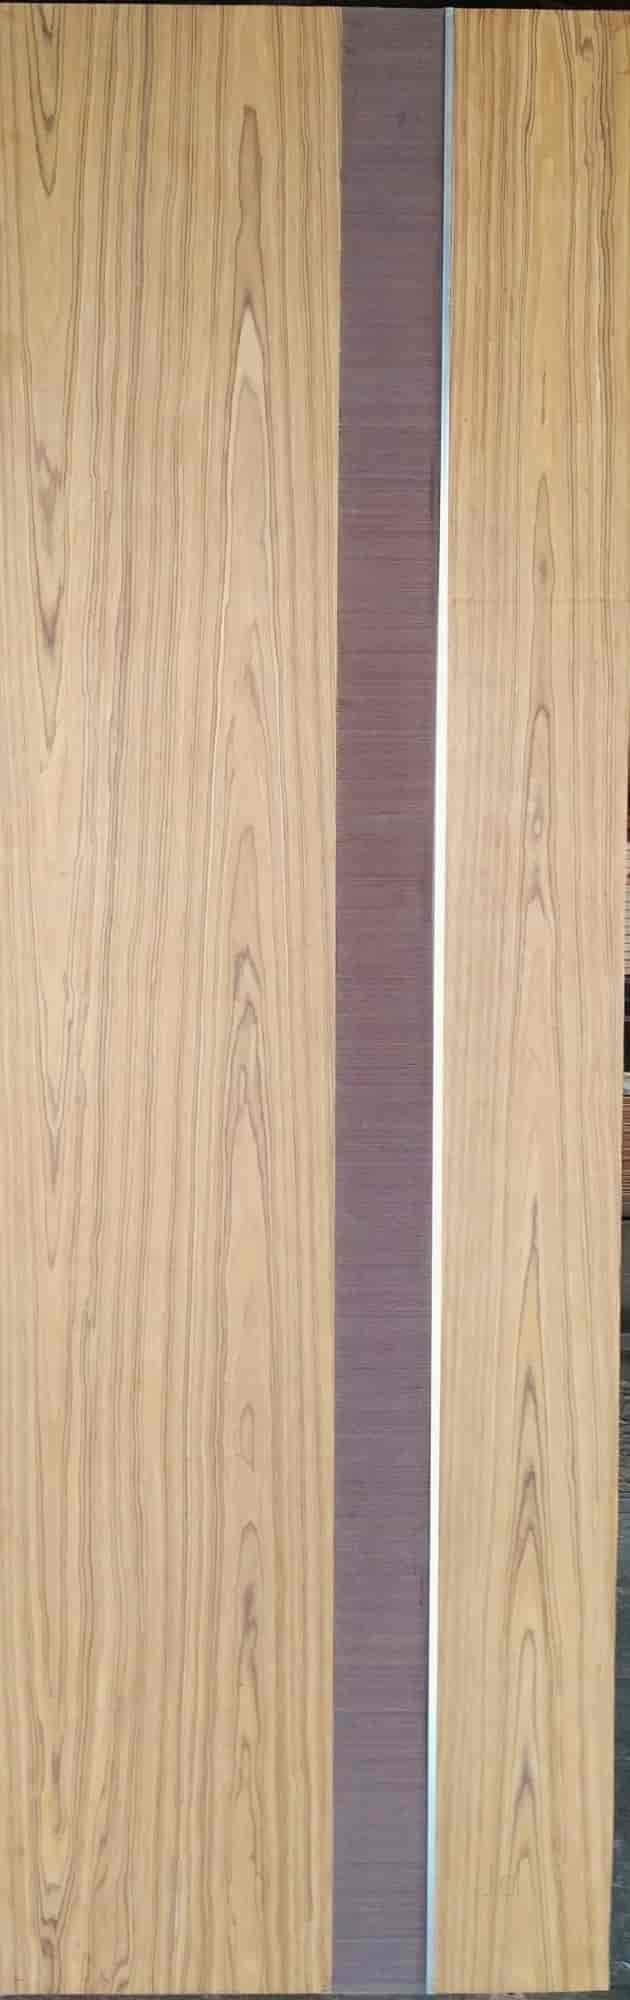 ... NERVY Doors Play Boards Photos Bannerghatta-Gottigere Bangalore - Plywood Dealers ... & NERVY Doors Play Boards Photos Bannerghatta Gottigere Bangalore ...